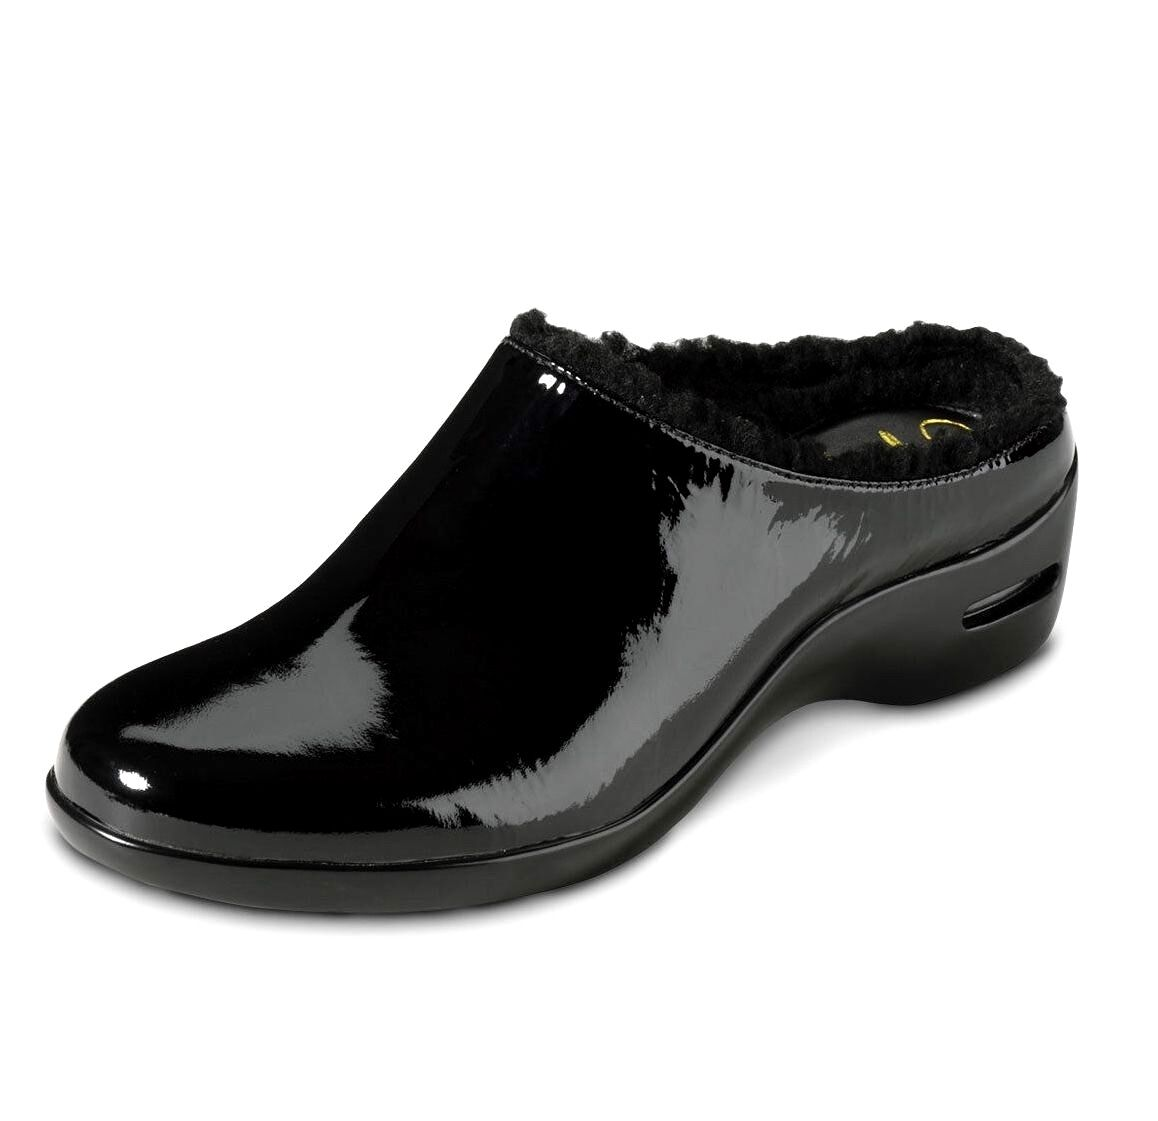 Cole Haan Women's Black Patent Leather Air Reena Shearling Slip On Clogs 6.5